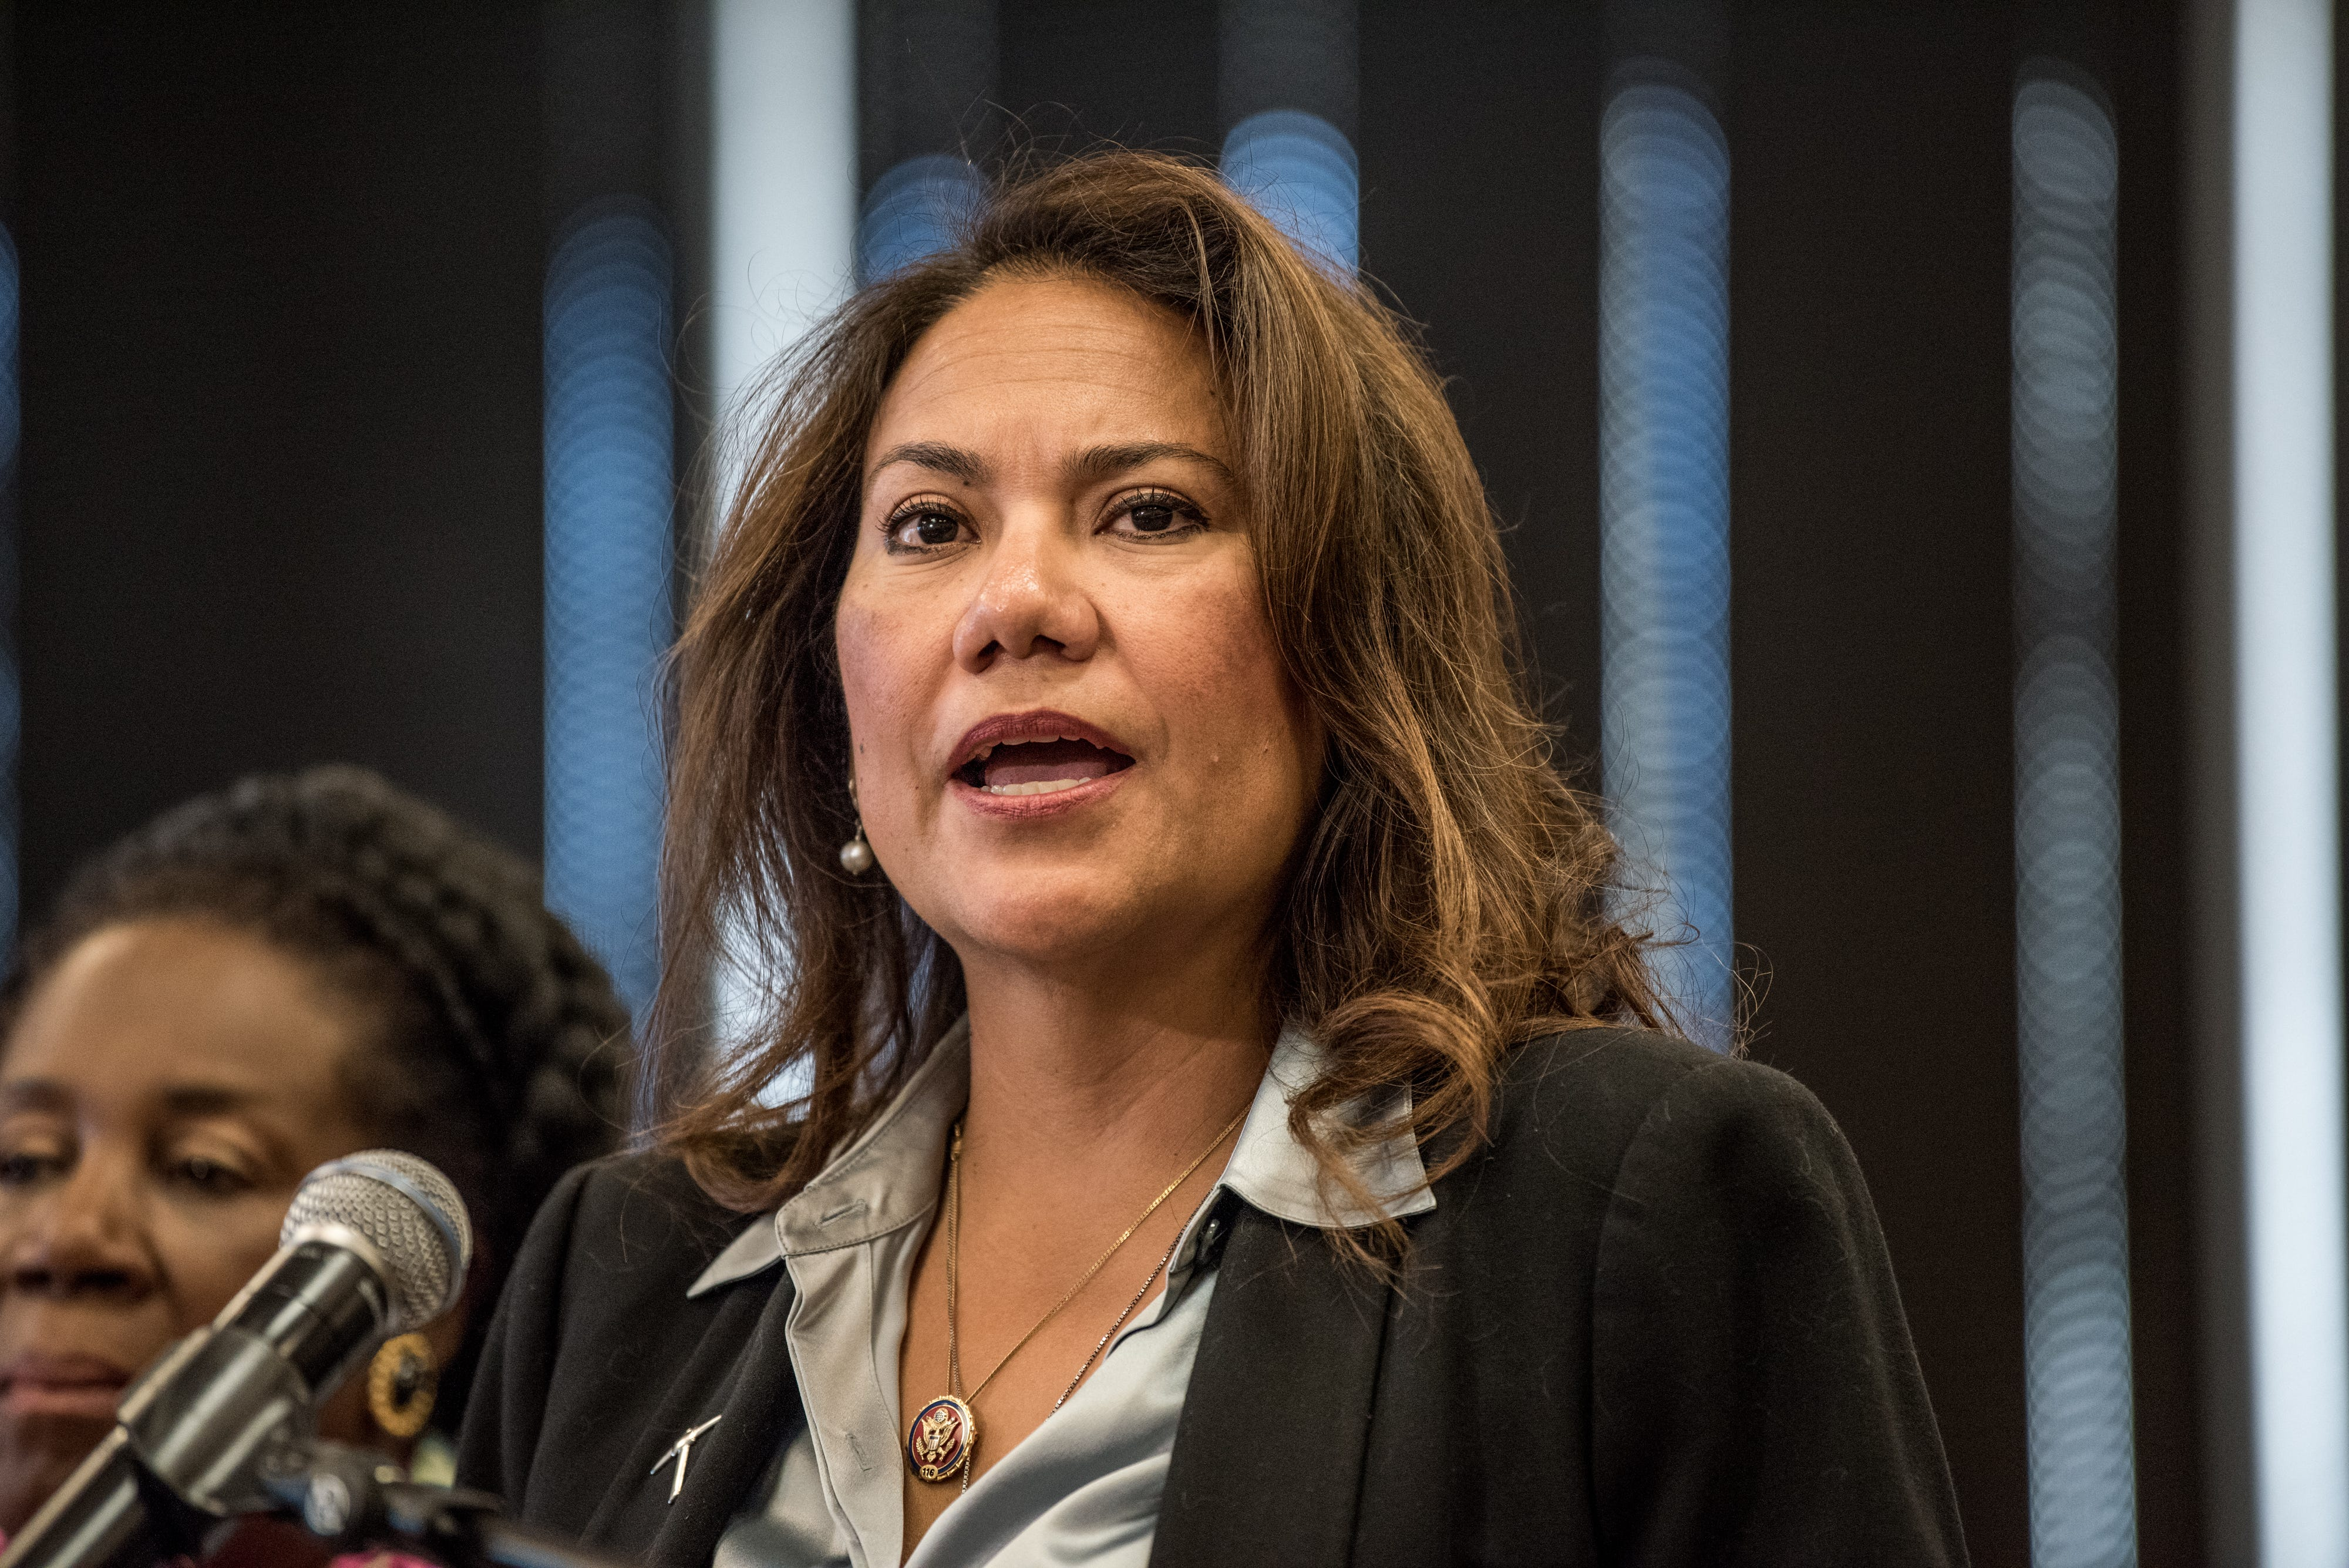 Veronica Escobar defends DACA recipients, blasts Trump after Supreme Court arguments